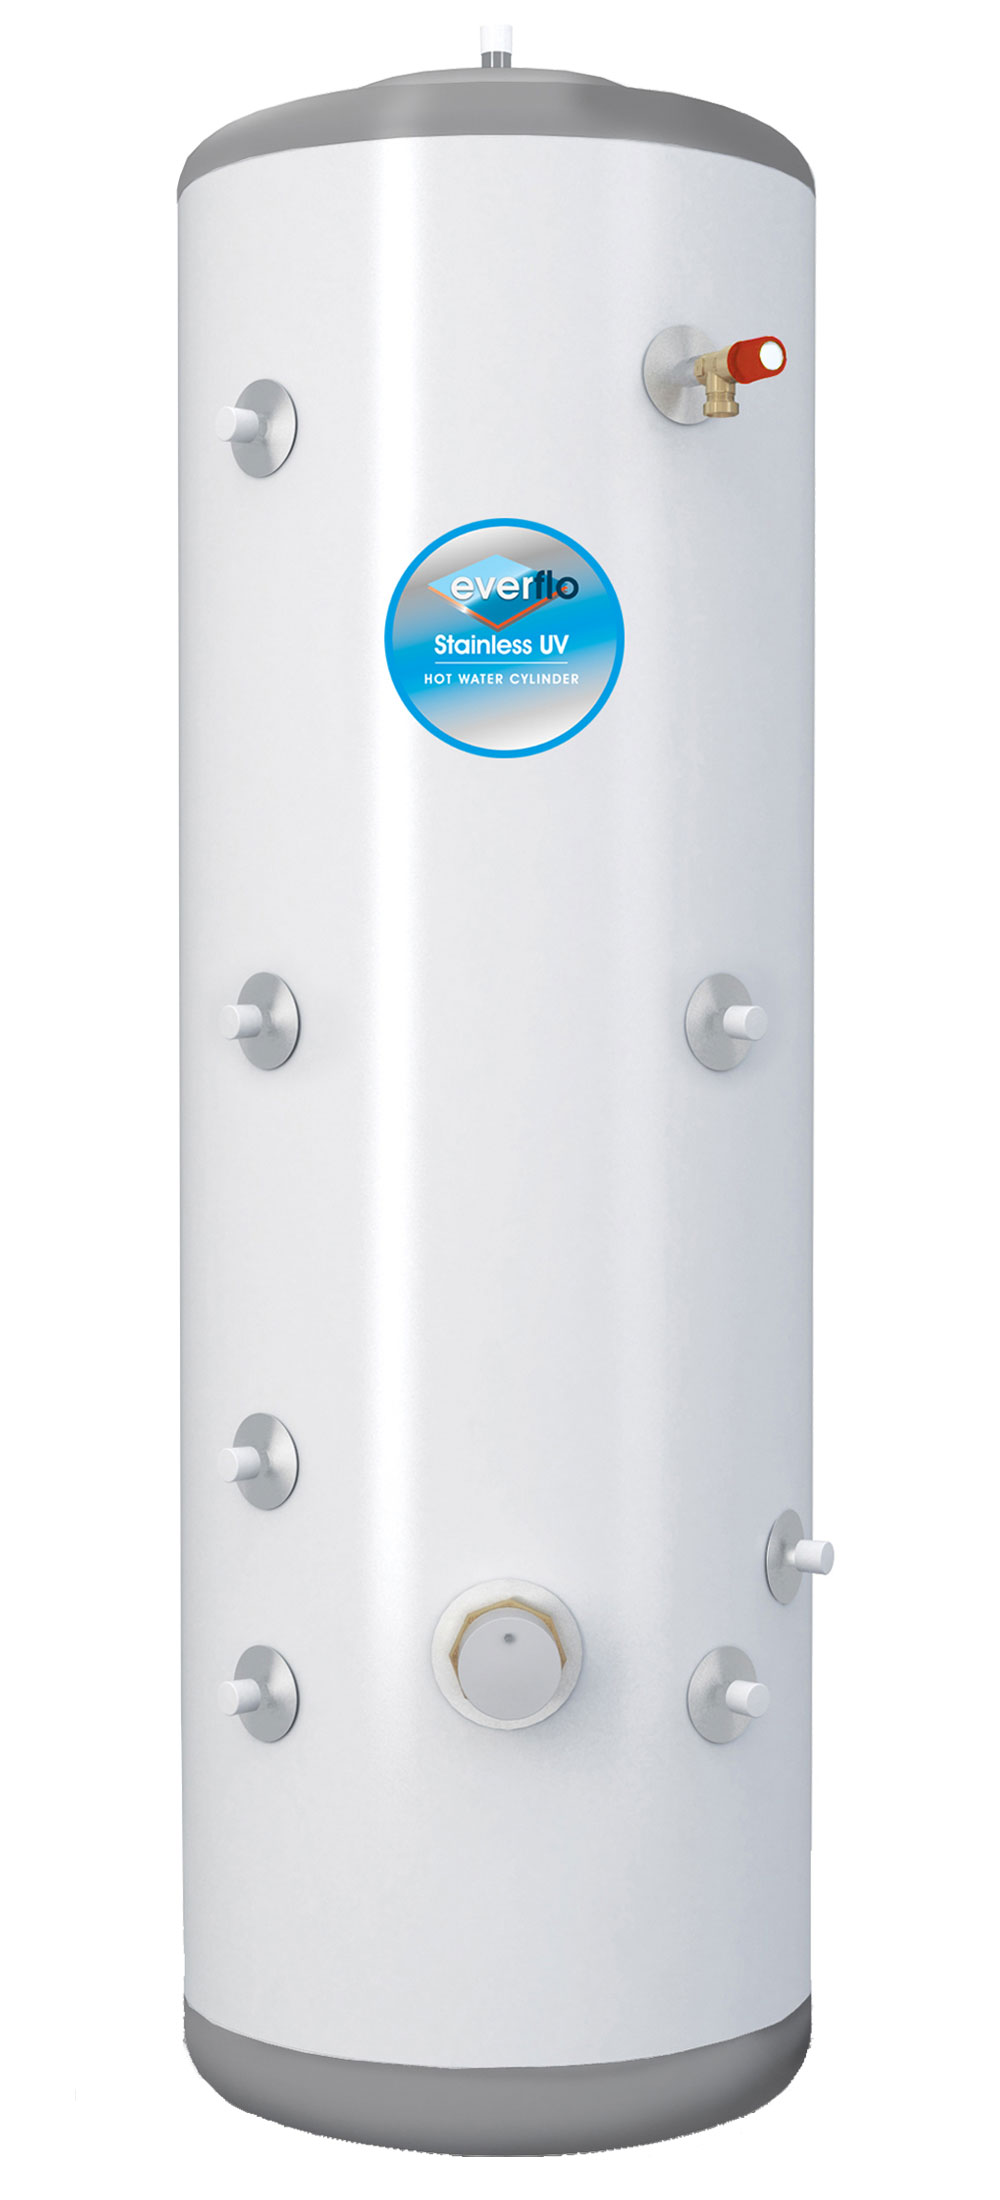 Everflo Stainless 300l Solar Indirect Unvented Hot Water